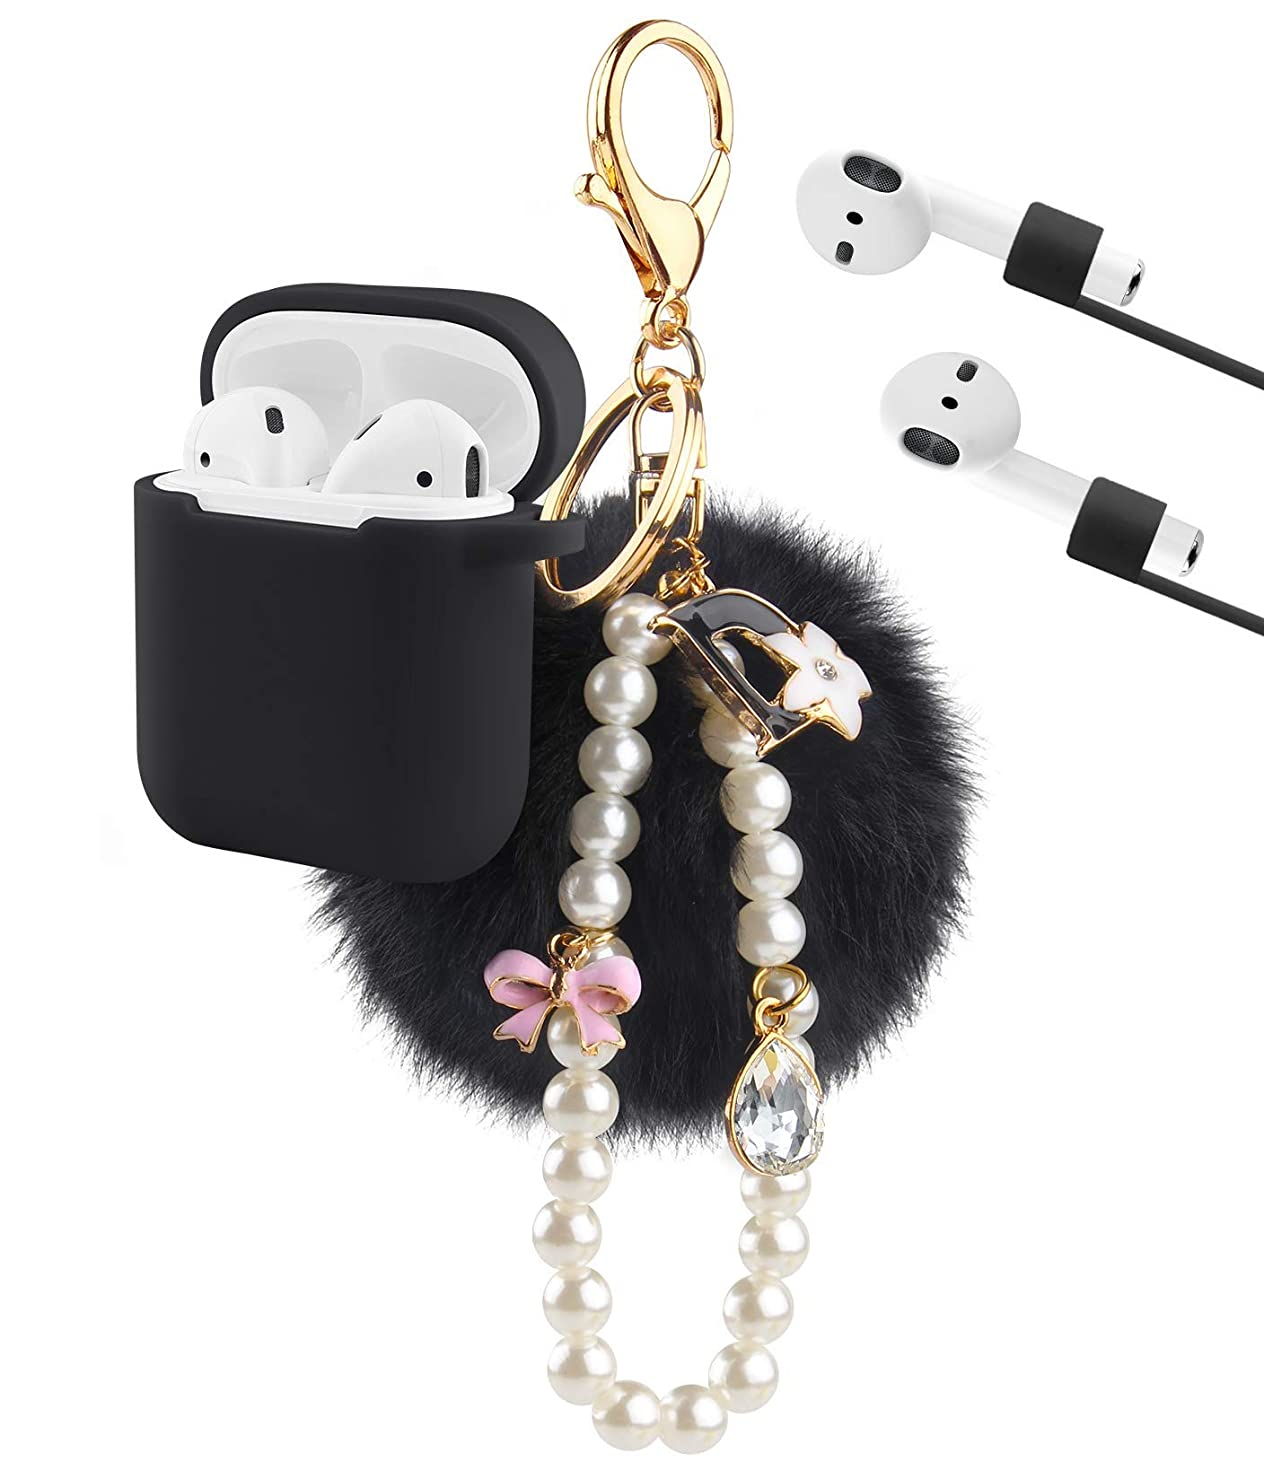 Airpods Case, KMMIN AirPods Protective Case Cover for Apple Air Pods 2&1 Charging Case Premium Silicone Skin Case Cover with Airpods Ear Hook Grips/Anti-Lost Cute Fur Ball Keychain- Black(New Version)